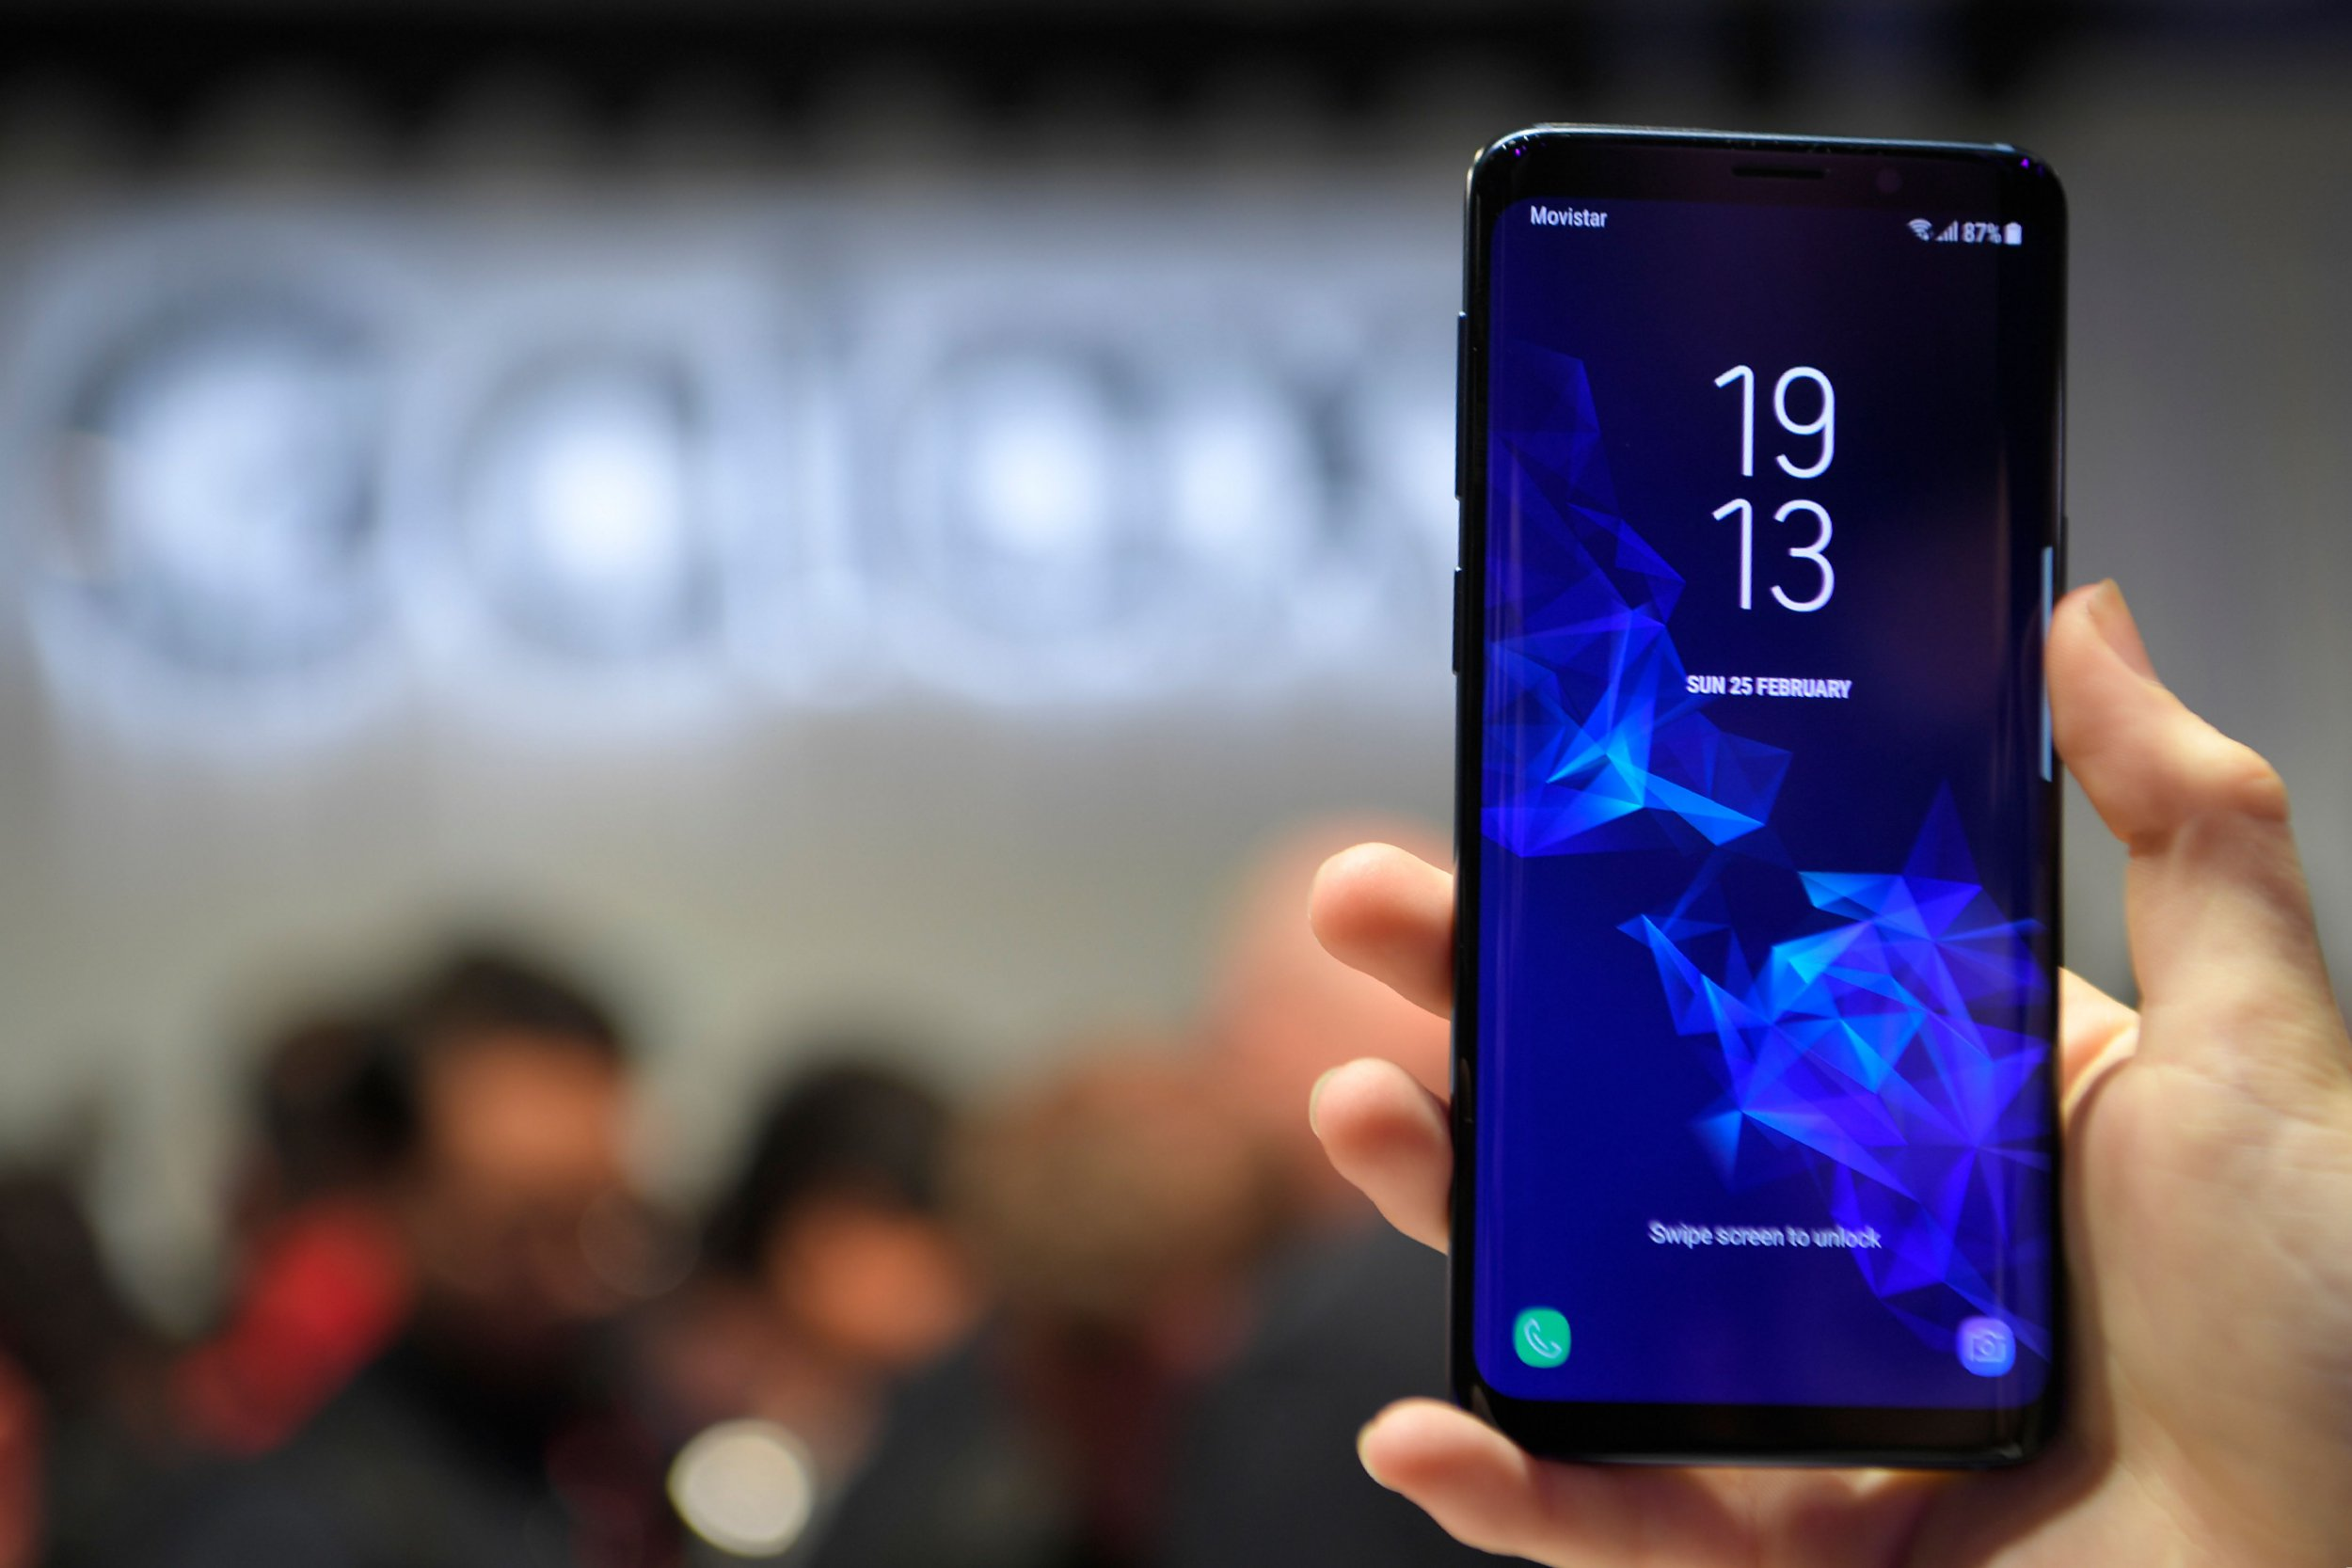 Samsung Galaxy S10 release date and pricing revealed after huge leak